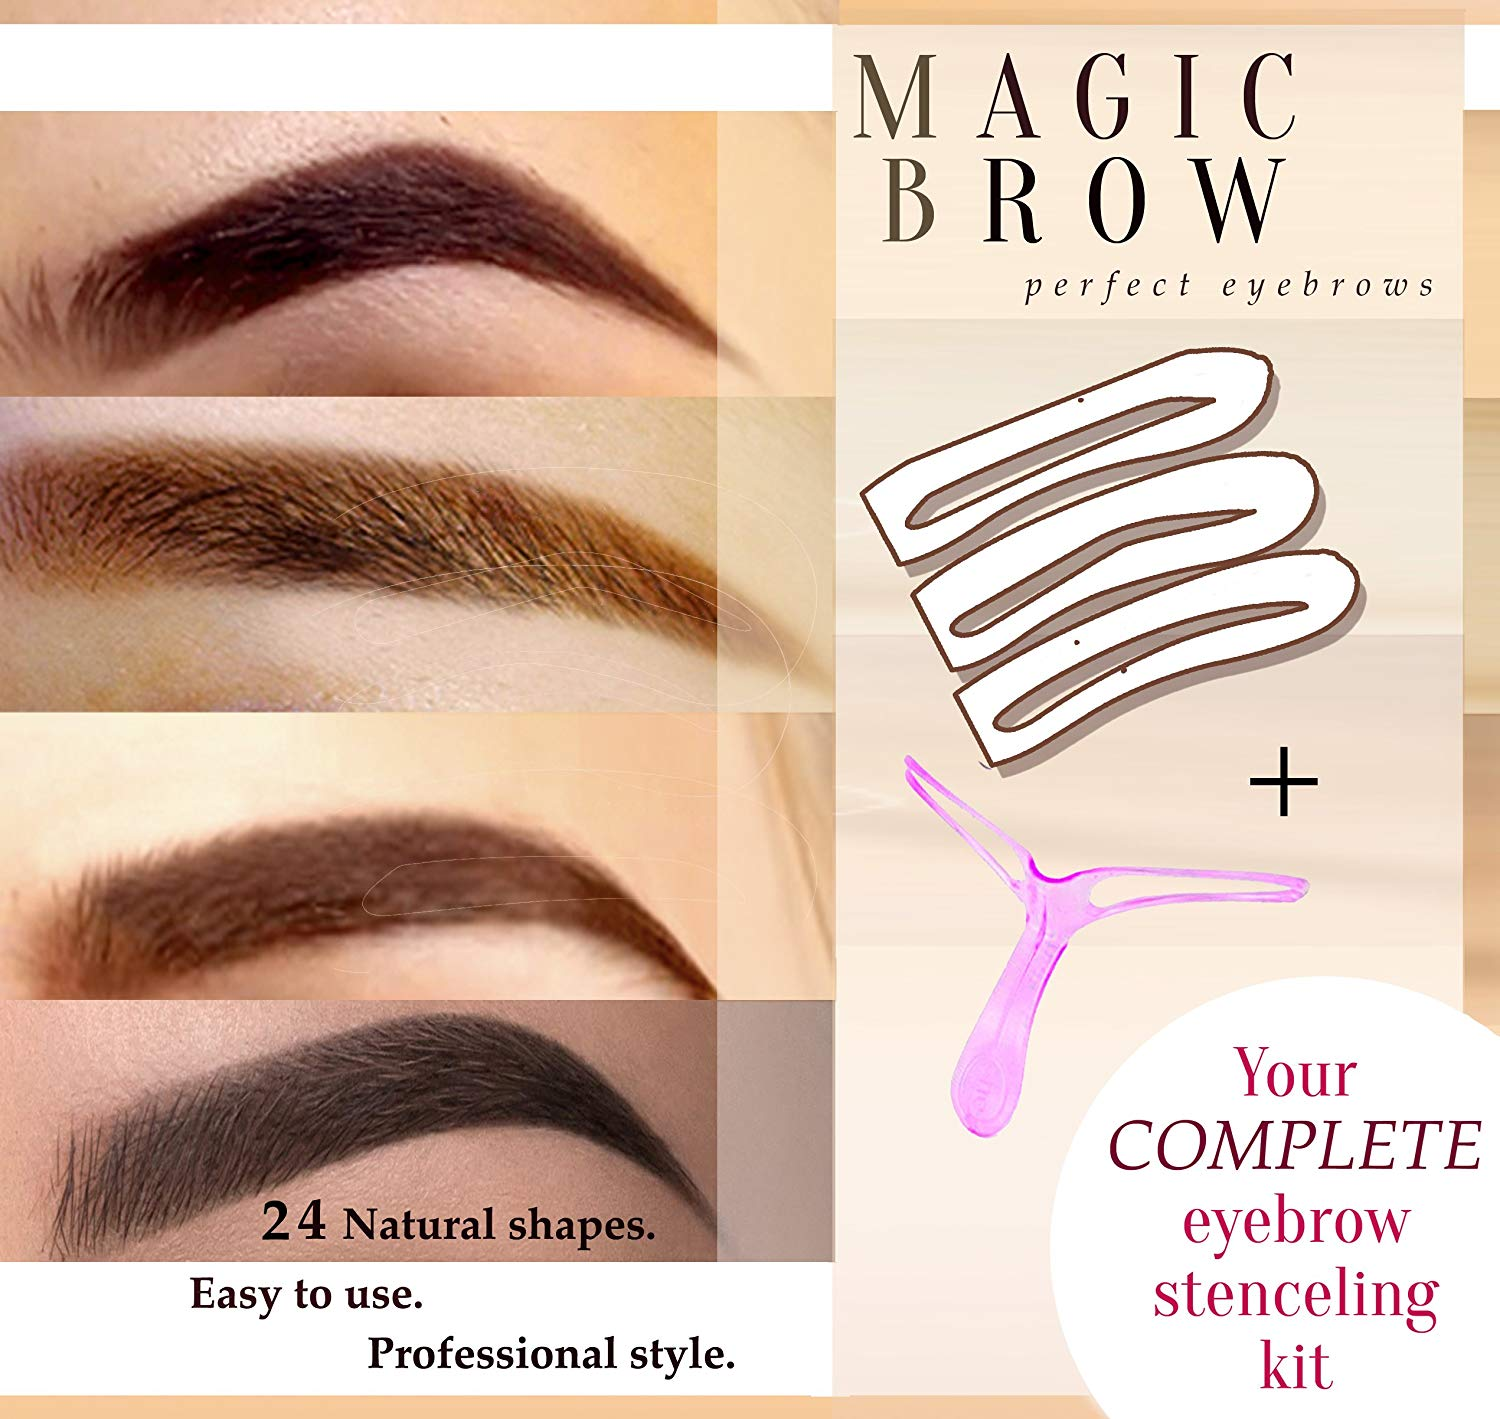 Eyebrow Stencils Eyebrows Grooming Stencil Kit Shaping Templates Diy